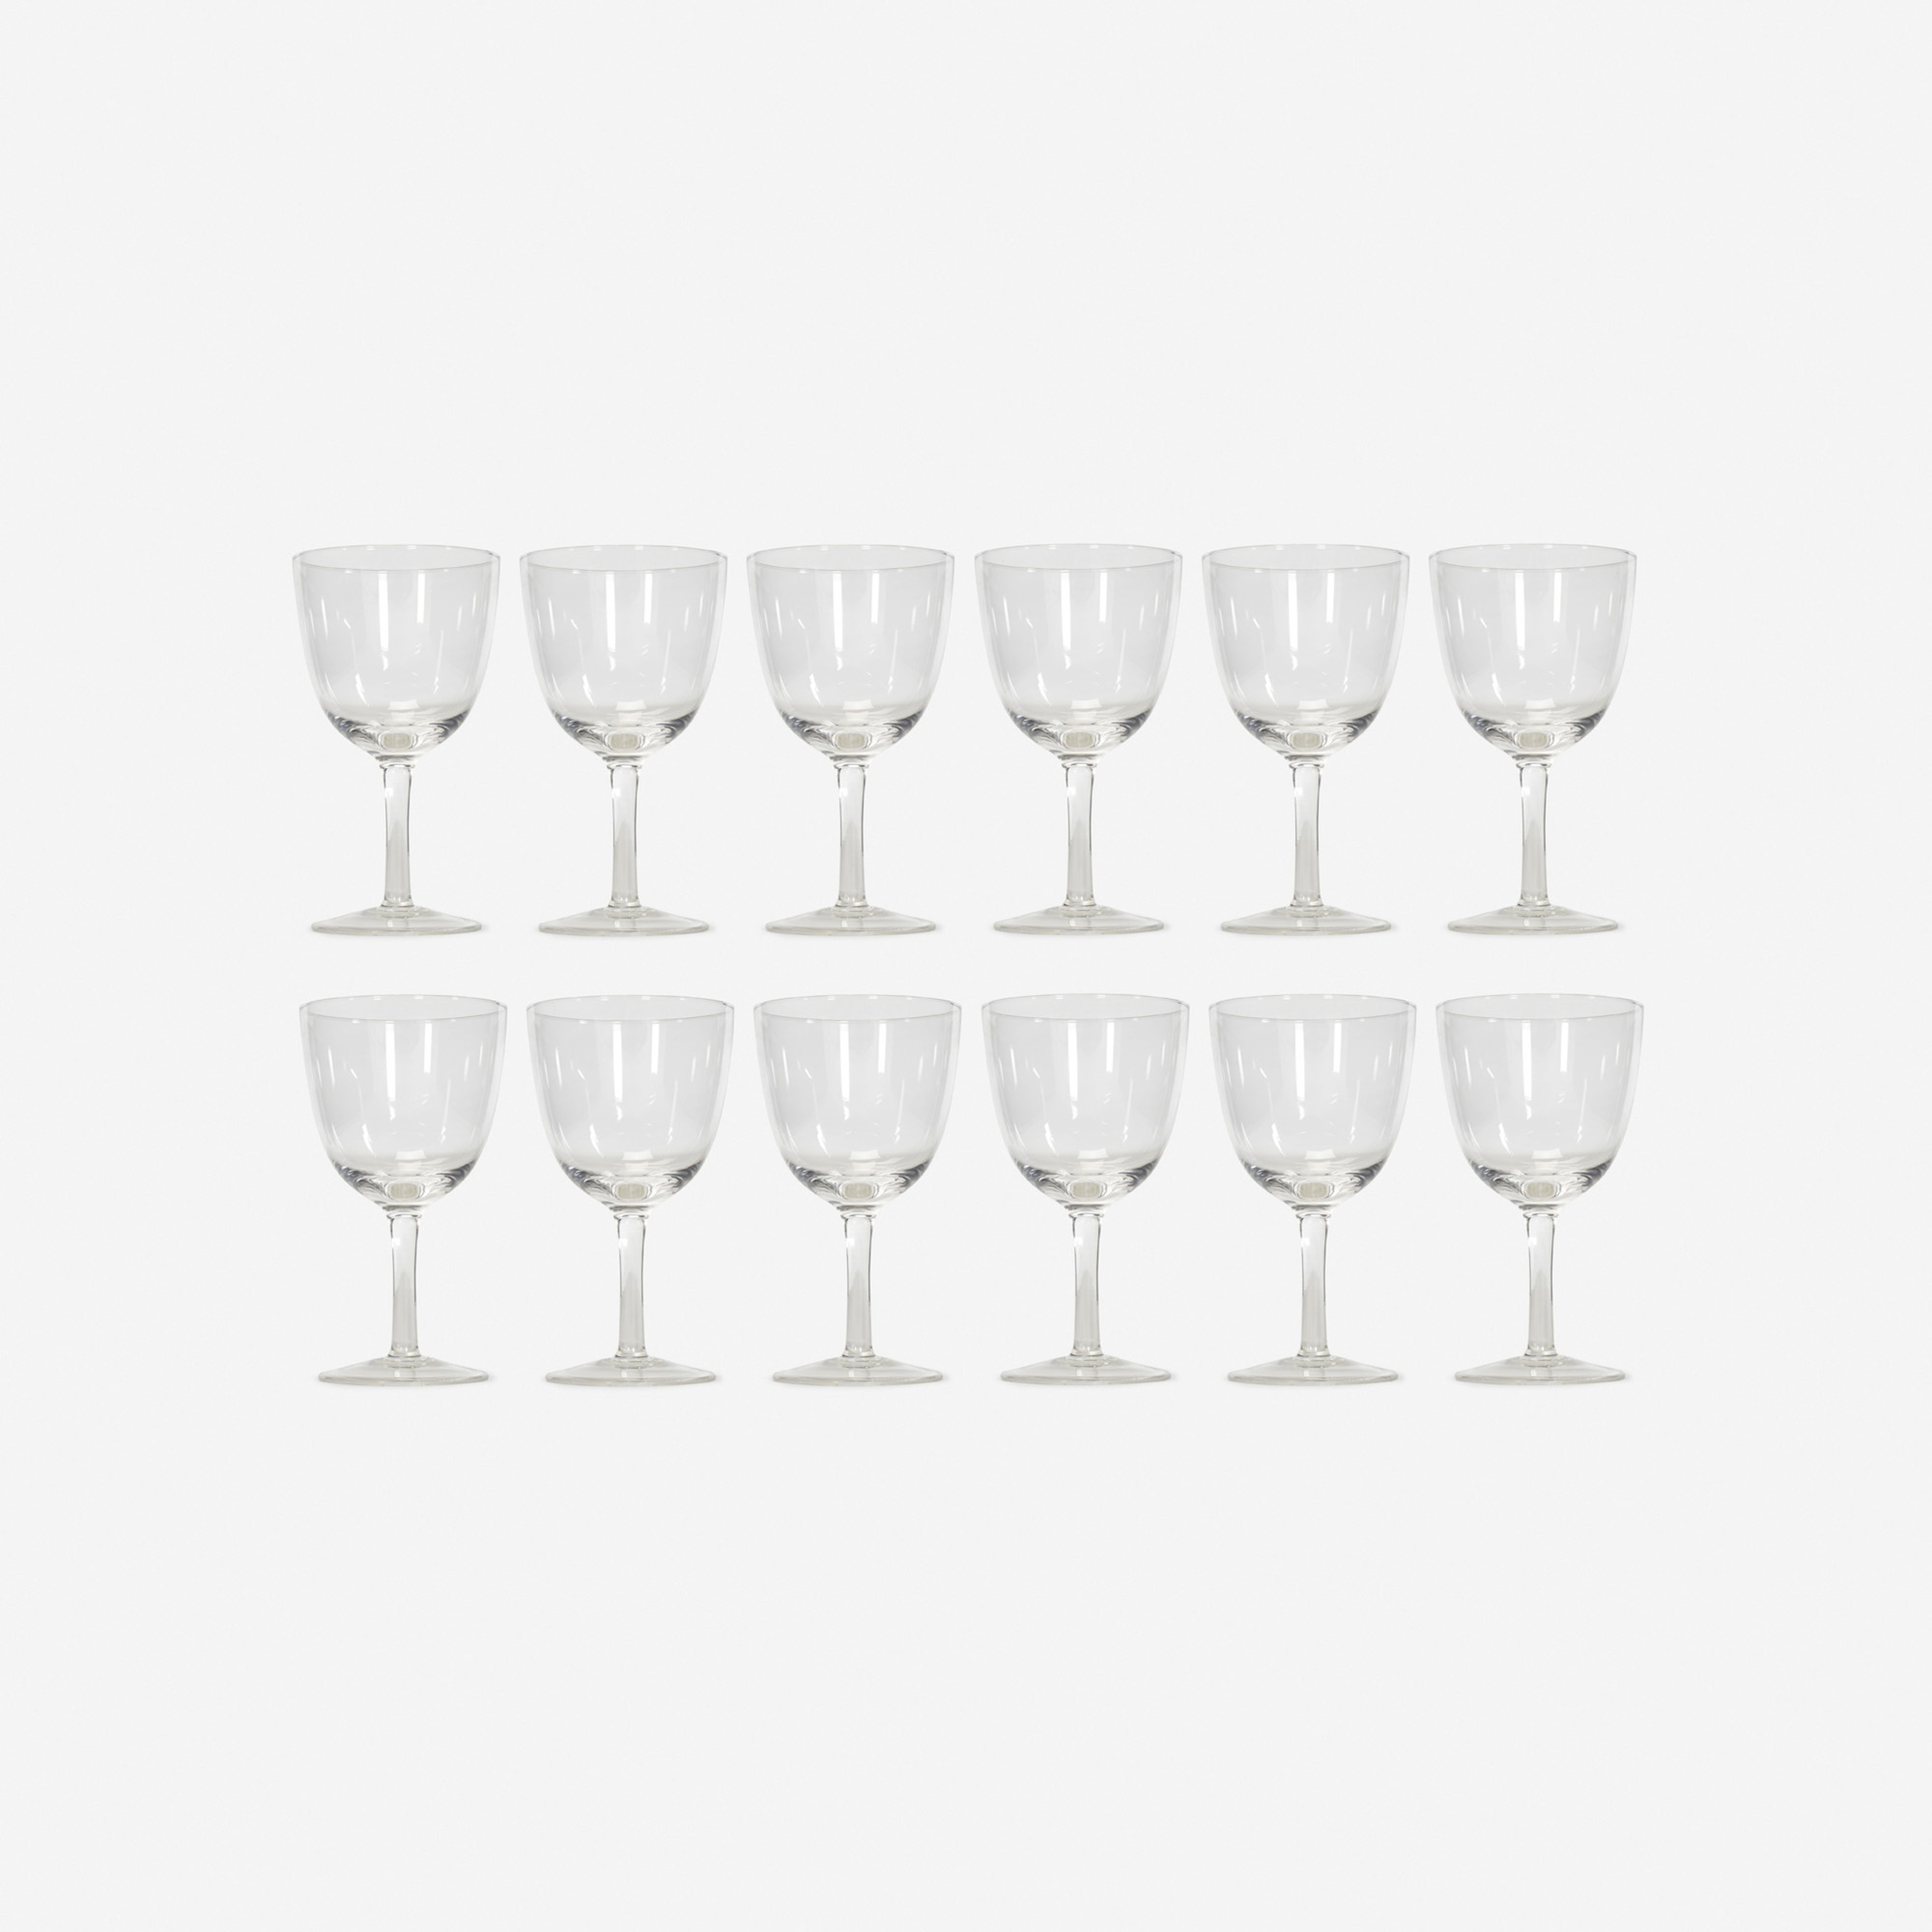 739: Garth and Ada Louise Huxtable / Water glasses from The Four Seasons, set of twelve (1 of 1)